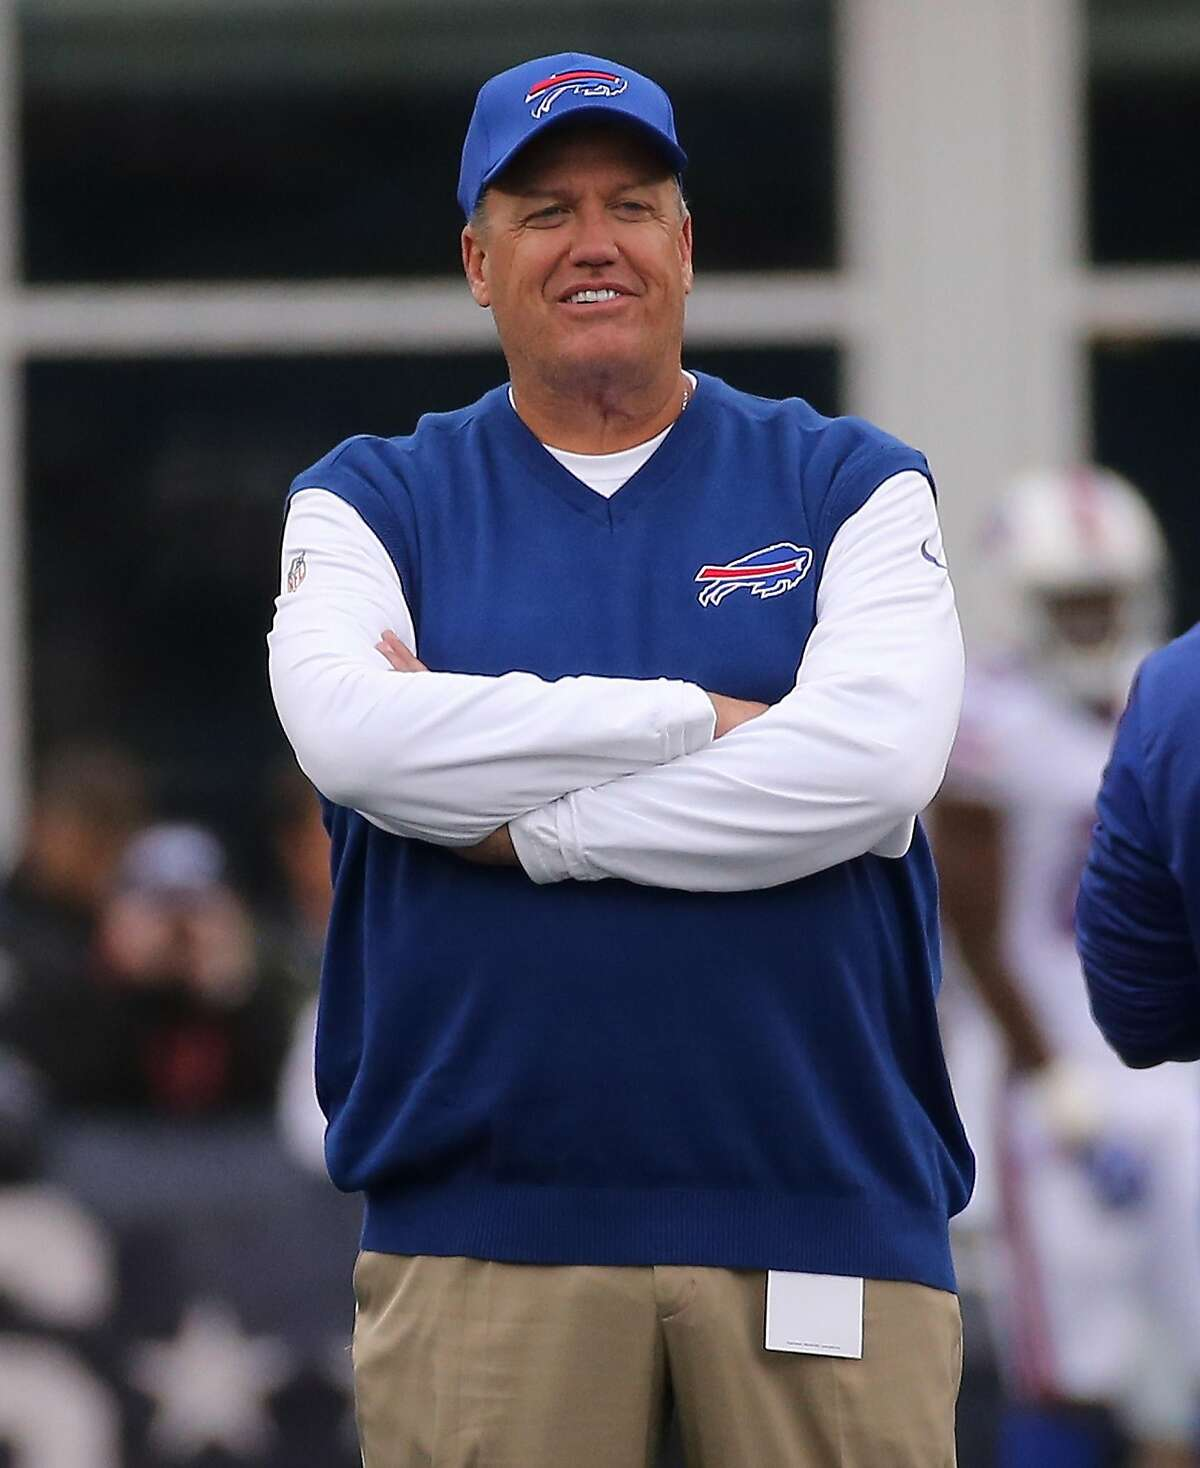 FOXBORO, MA - OCTOBER 02: Rex Ryan of the Buffalo Bills looks on during drills before a game with Buffalo Bills at Gillette Stadium on October 2, 2016 in Foxboro, Massachusetts. (Photo by Jim Rogash/Getty Images)